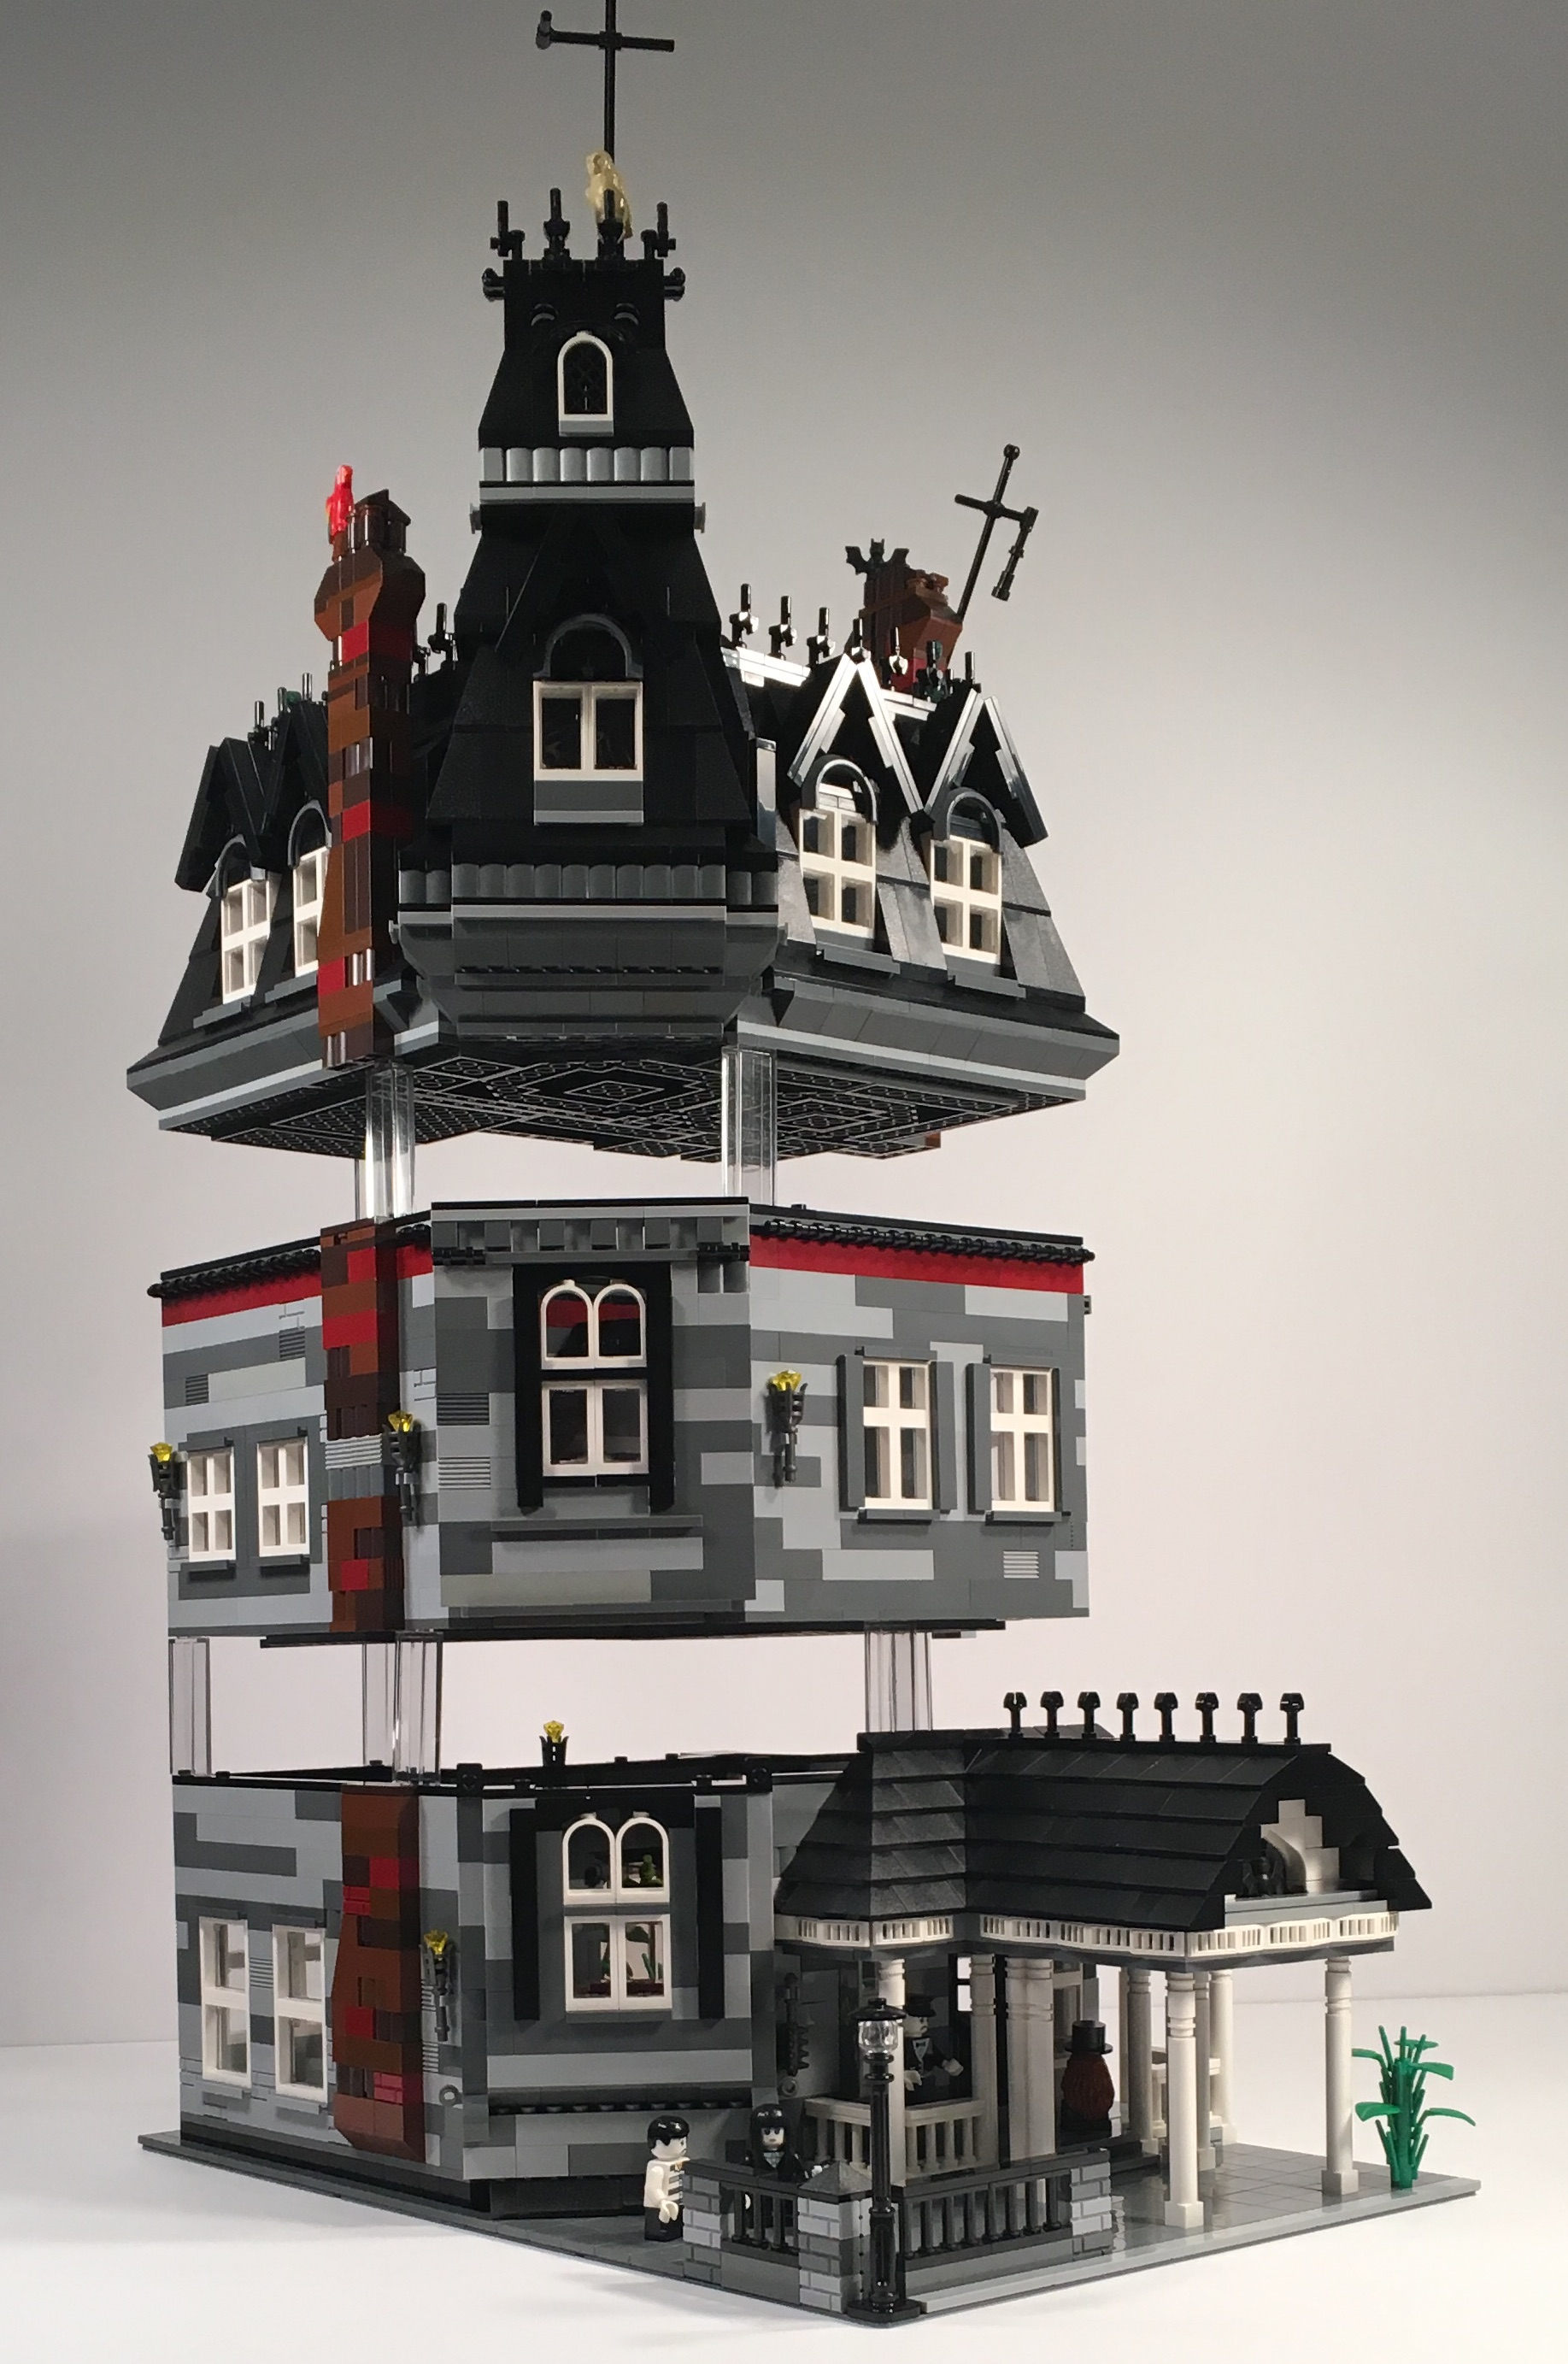 lego-ideas-addams-family-mansion-modular-stockwerke-afol777-2019 zusammengebaut.com